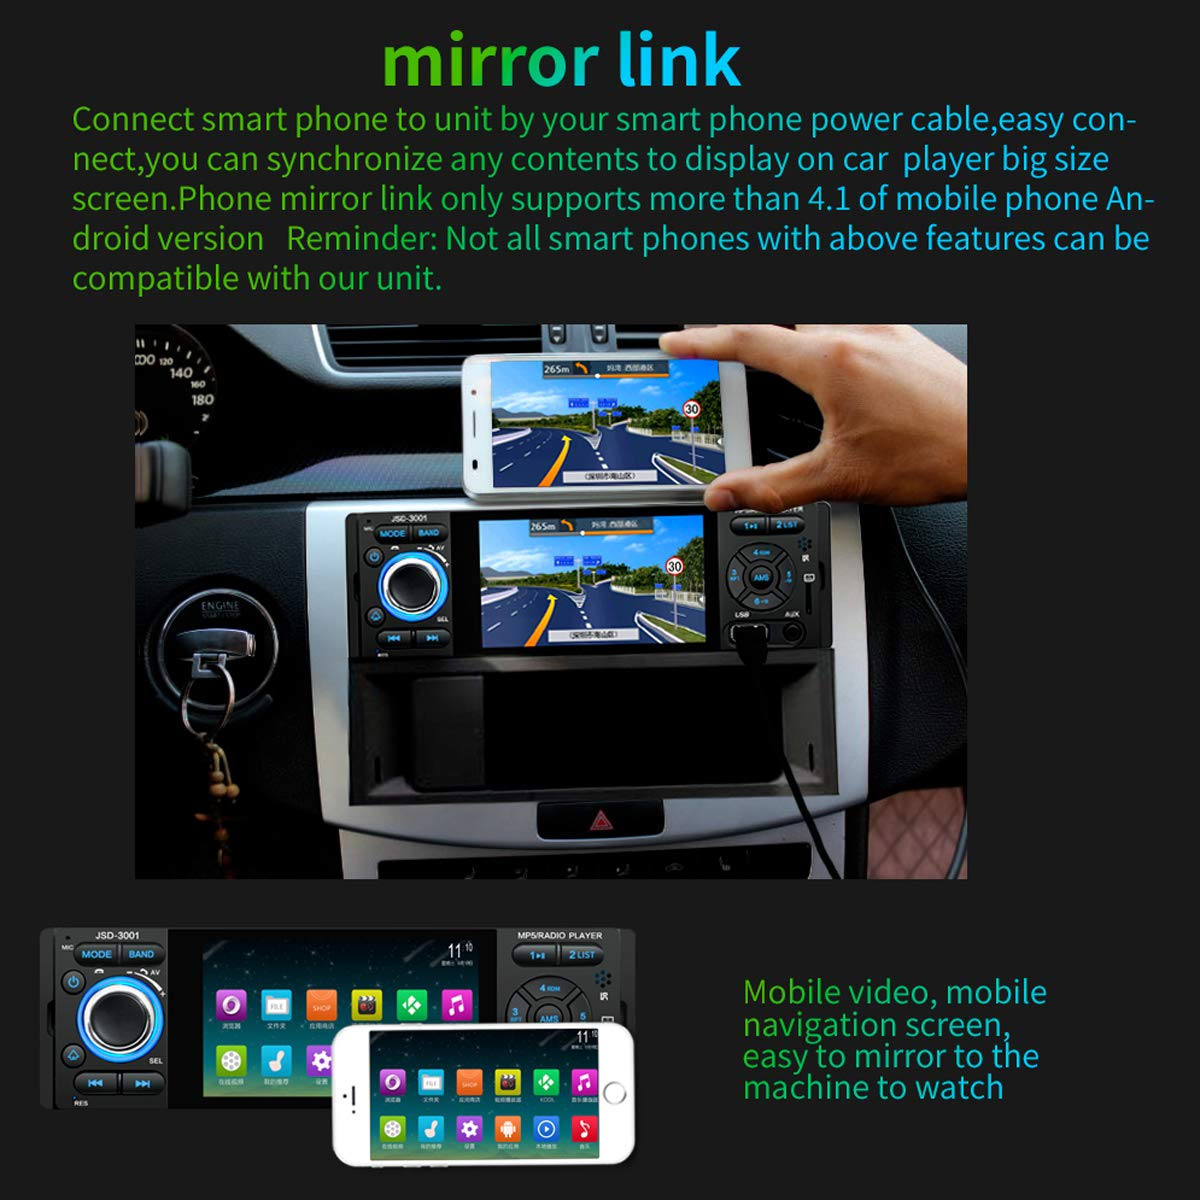 Audio DONGMAO Car Radio 2 Din 7 inch Double Ingot Audio and Video Car MP4 Player Reversing Priority Bluetooth 7060B Car & Vehicle Electronics